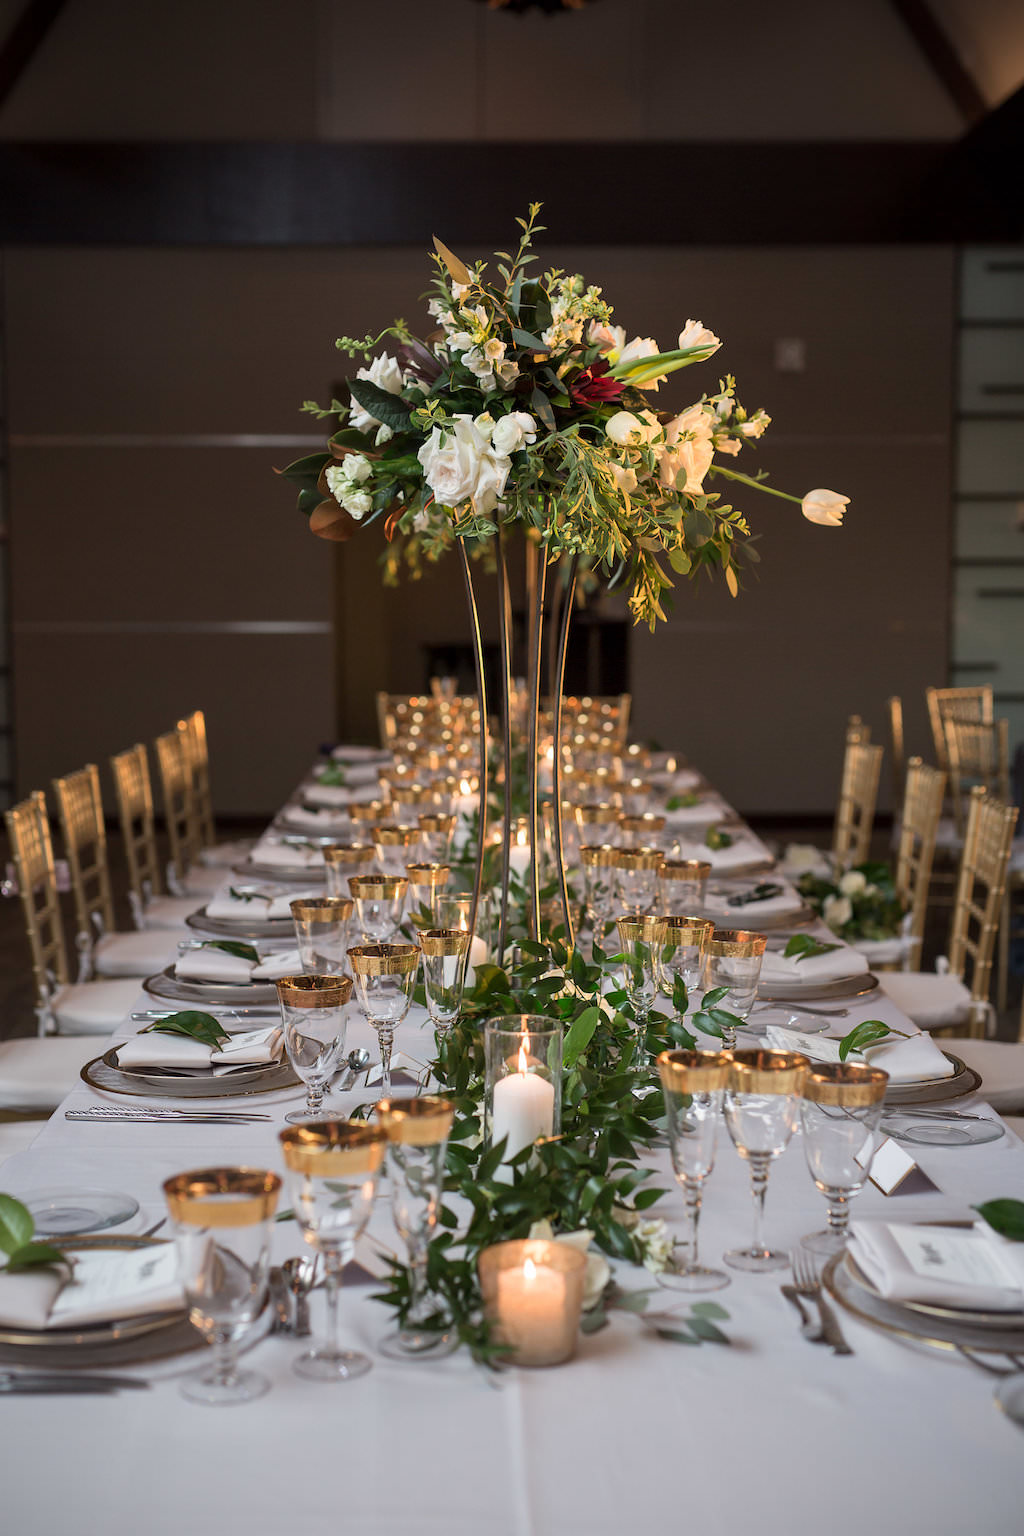 Modern, Elegant Wedding Reception Decor, Long Feasting Table with Tall Gold Stand with Organic Greenery and White Floral Centerpiece, Greenery Garland Table Runner, Candles and Gold Rimmer Glasses, Gold Chiavari Chairs | Tampa Bay Photographer Cat Pennenga Photography| Sarasota Wedding Planner NK Productions